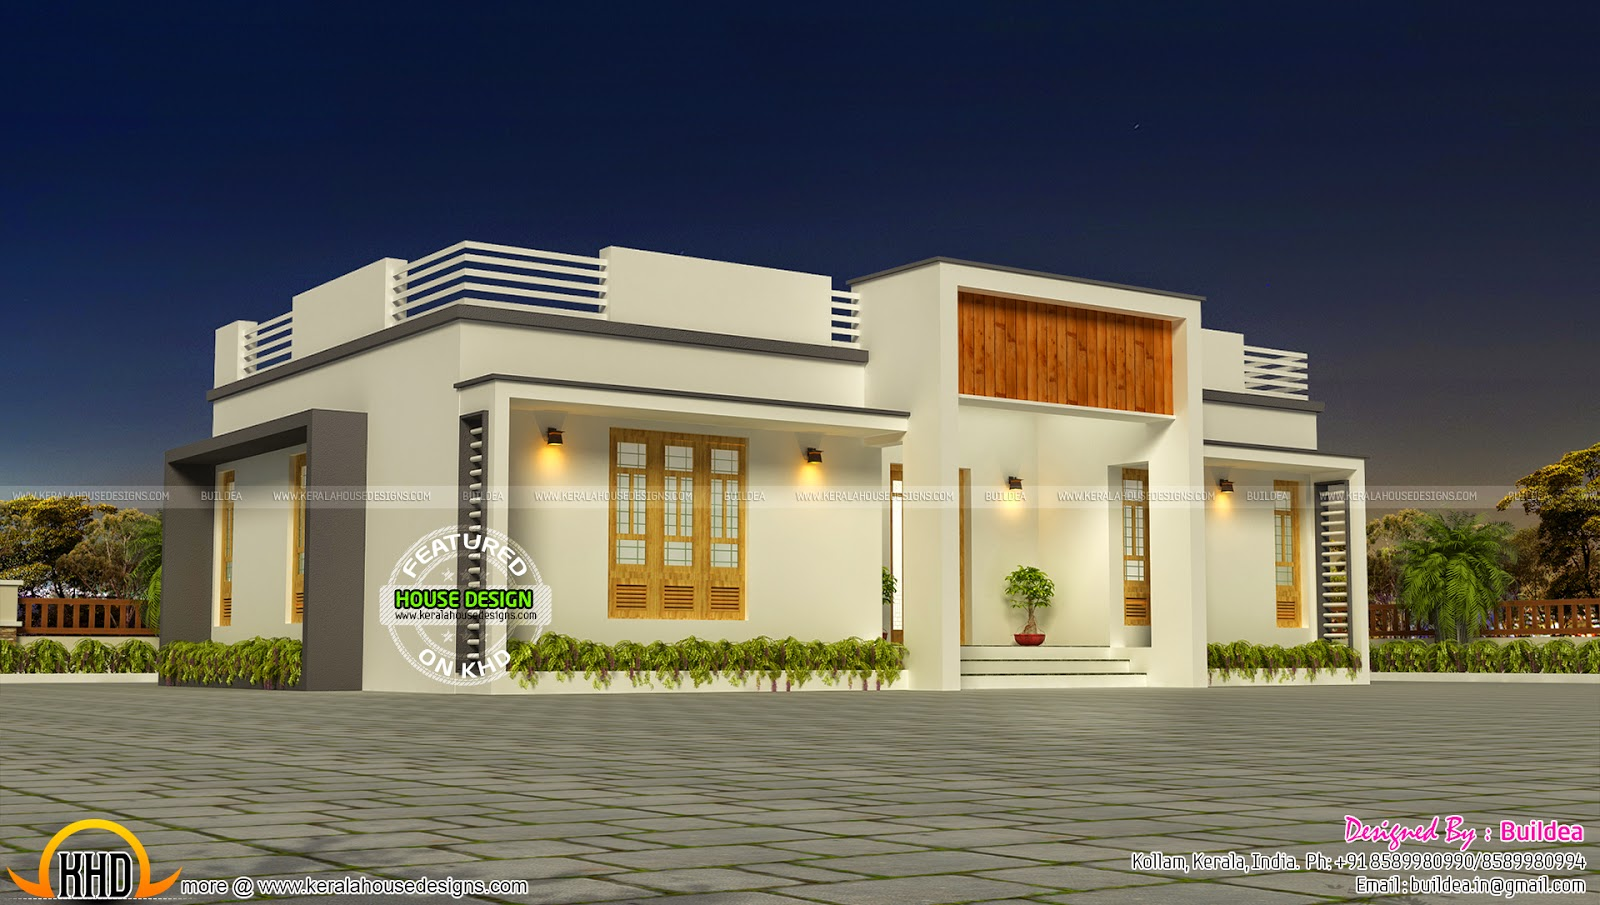 House disining house designs in the philippines in iloilo by